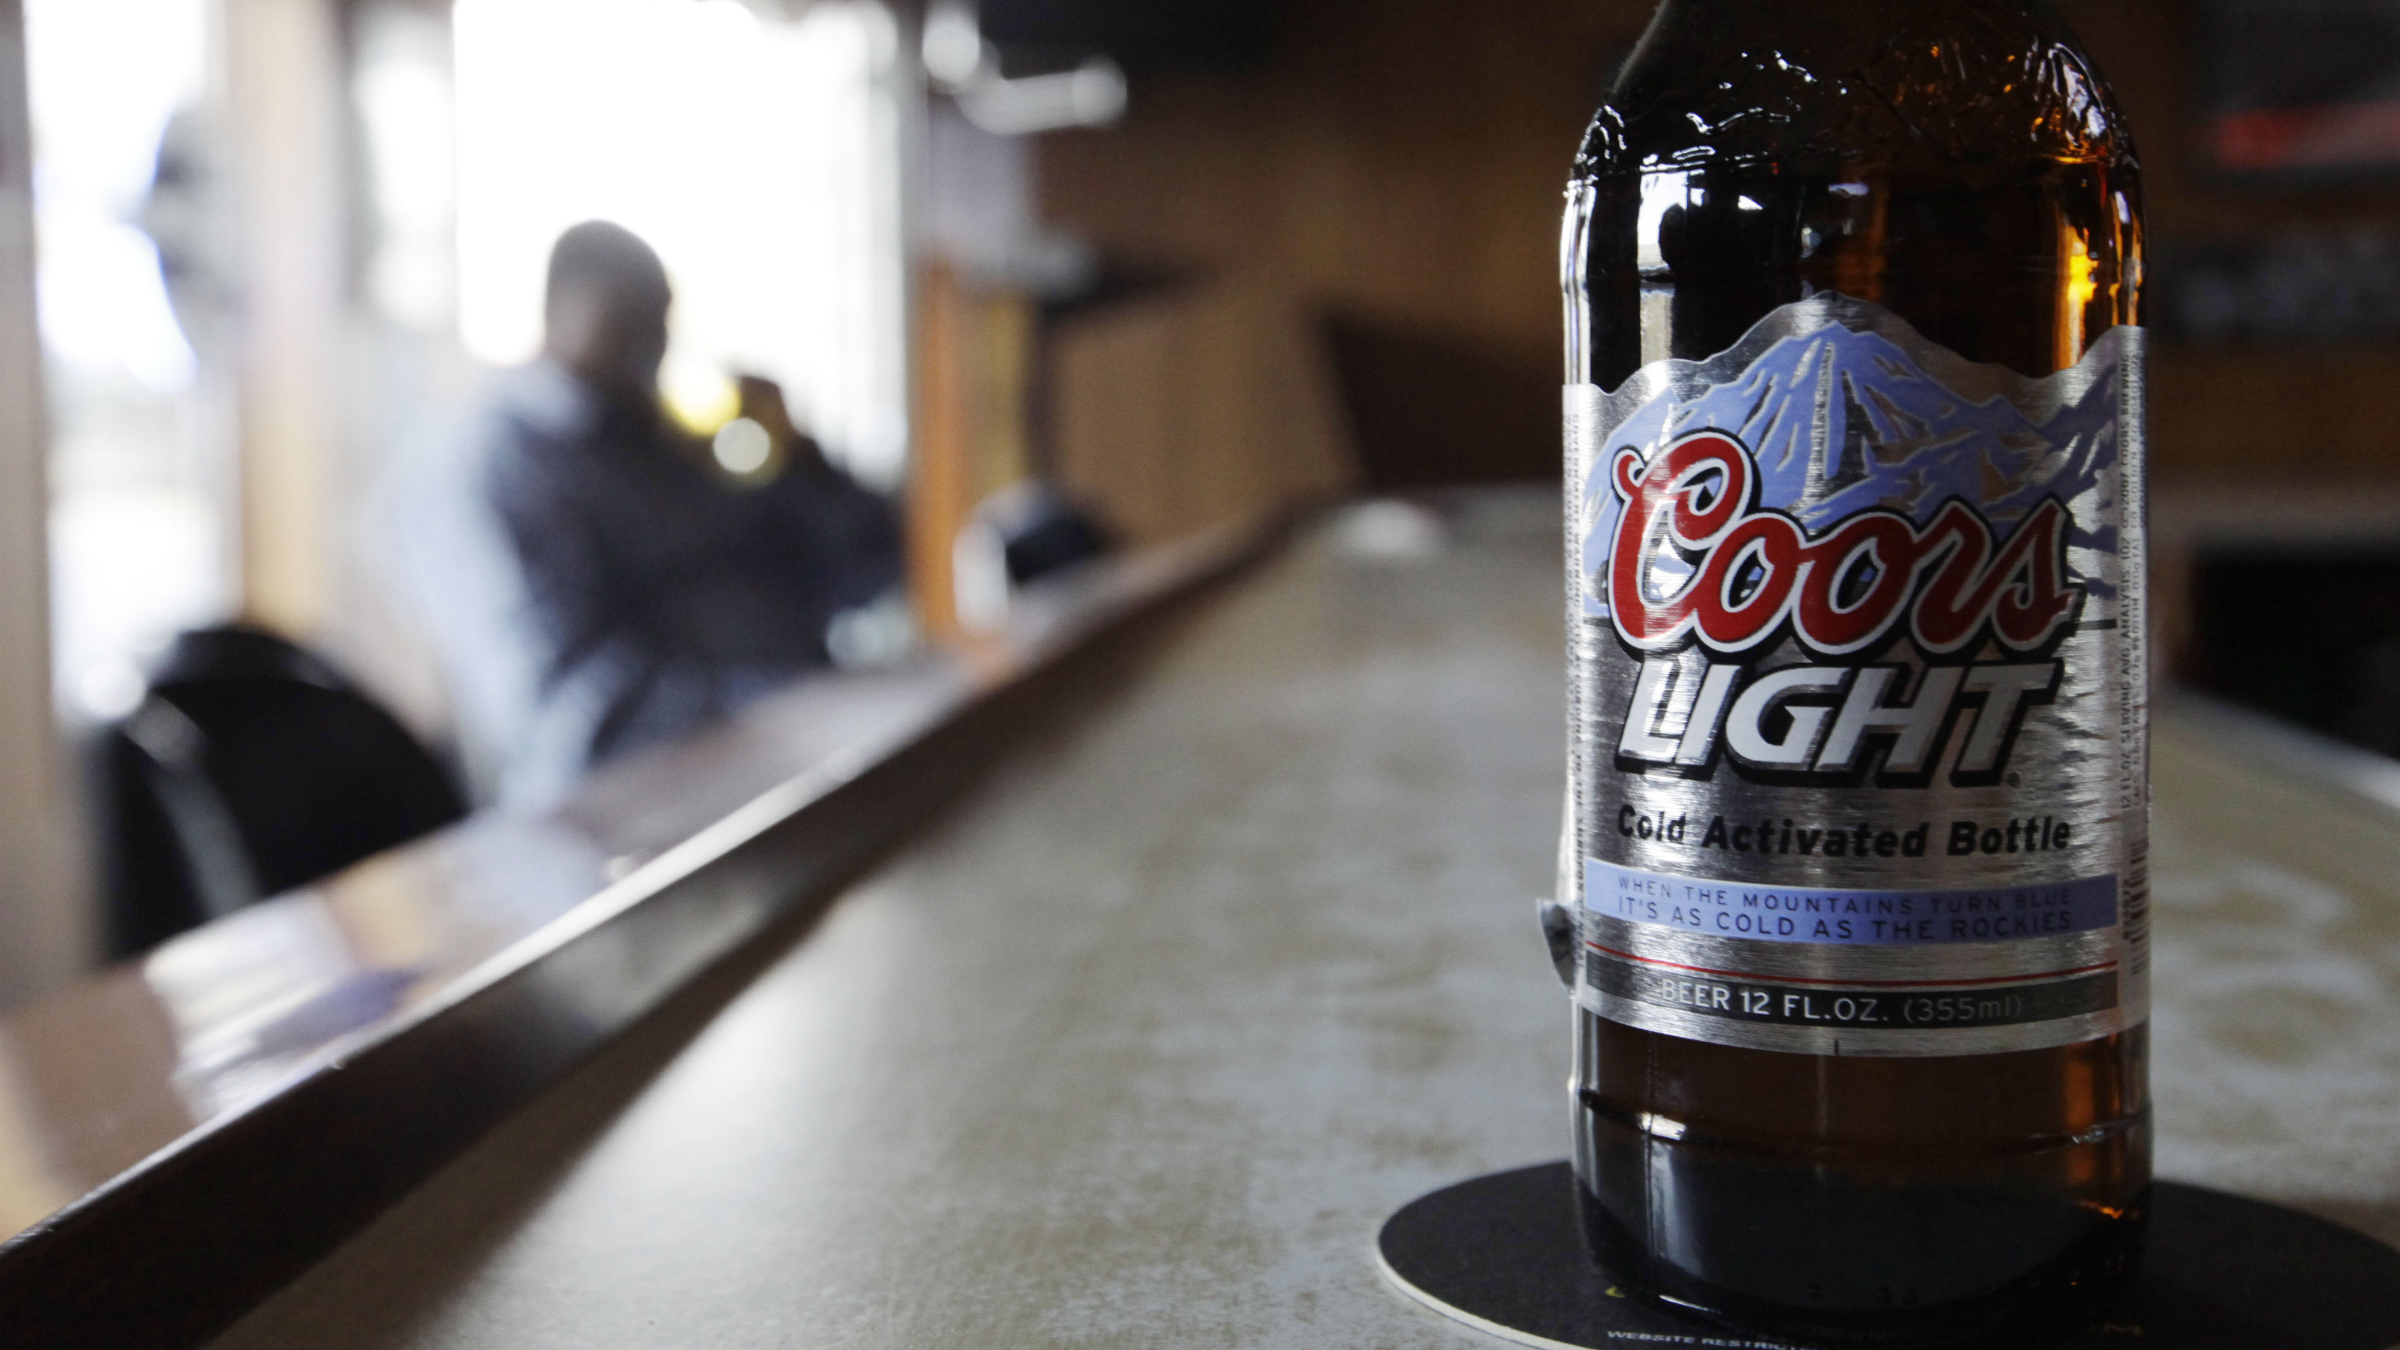 A Coors Light sits on the bar as a patron sips a beer at a tavern Monday, May 4, 2009, in Blue Island, Ill. Molson Coors Brewing Co. and SABMiller PLC said Tuesday that the first-quarter profit for their U.S. joint venture MillerCoors LLC rose 51 percent as sales of Coors Light and other brands were helped by higher prices and fewer promotions. (AP Photo/M. Spencer Green